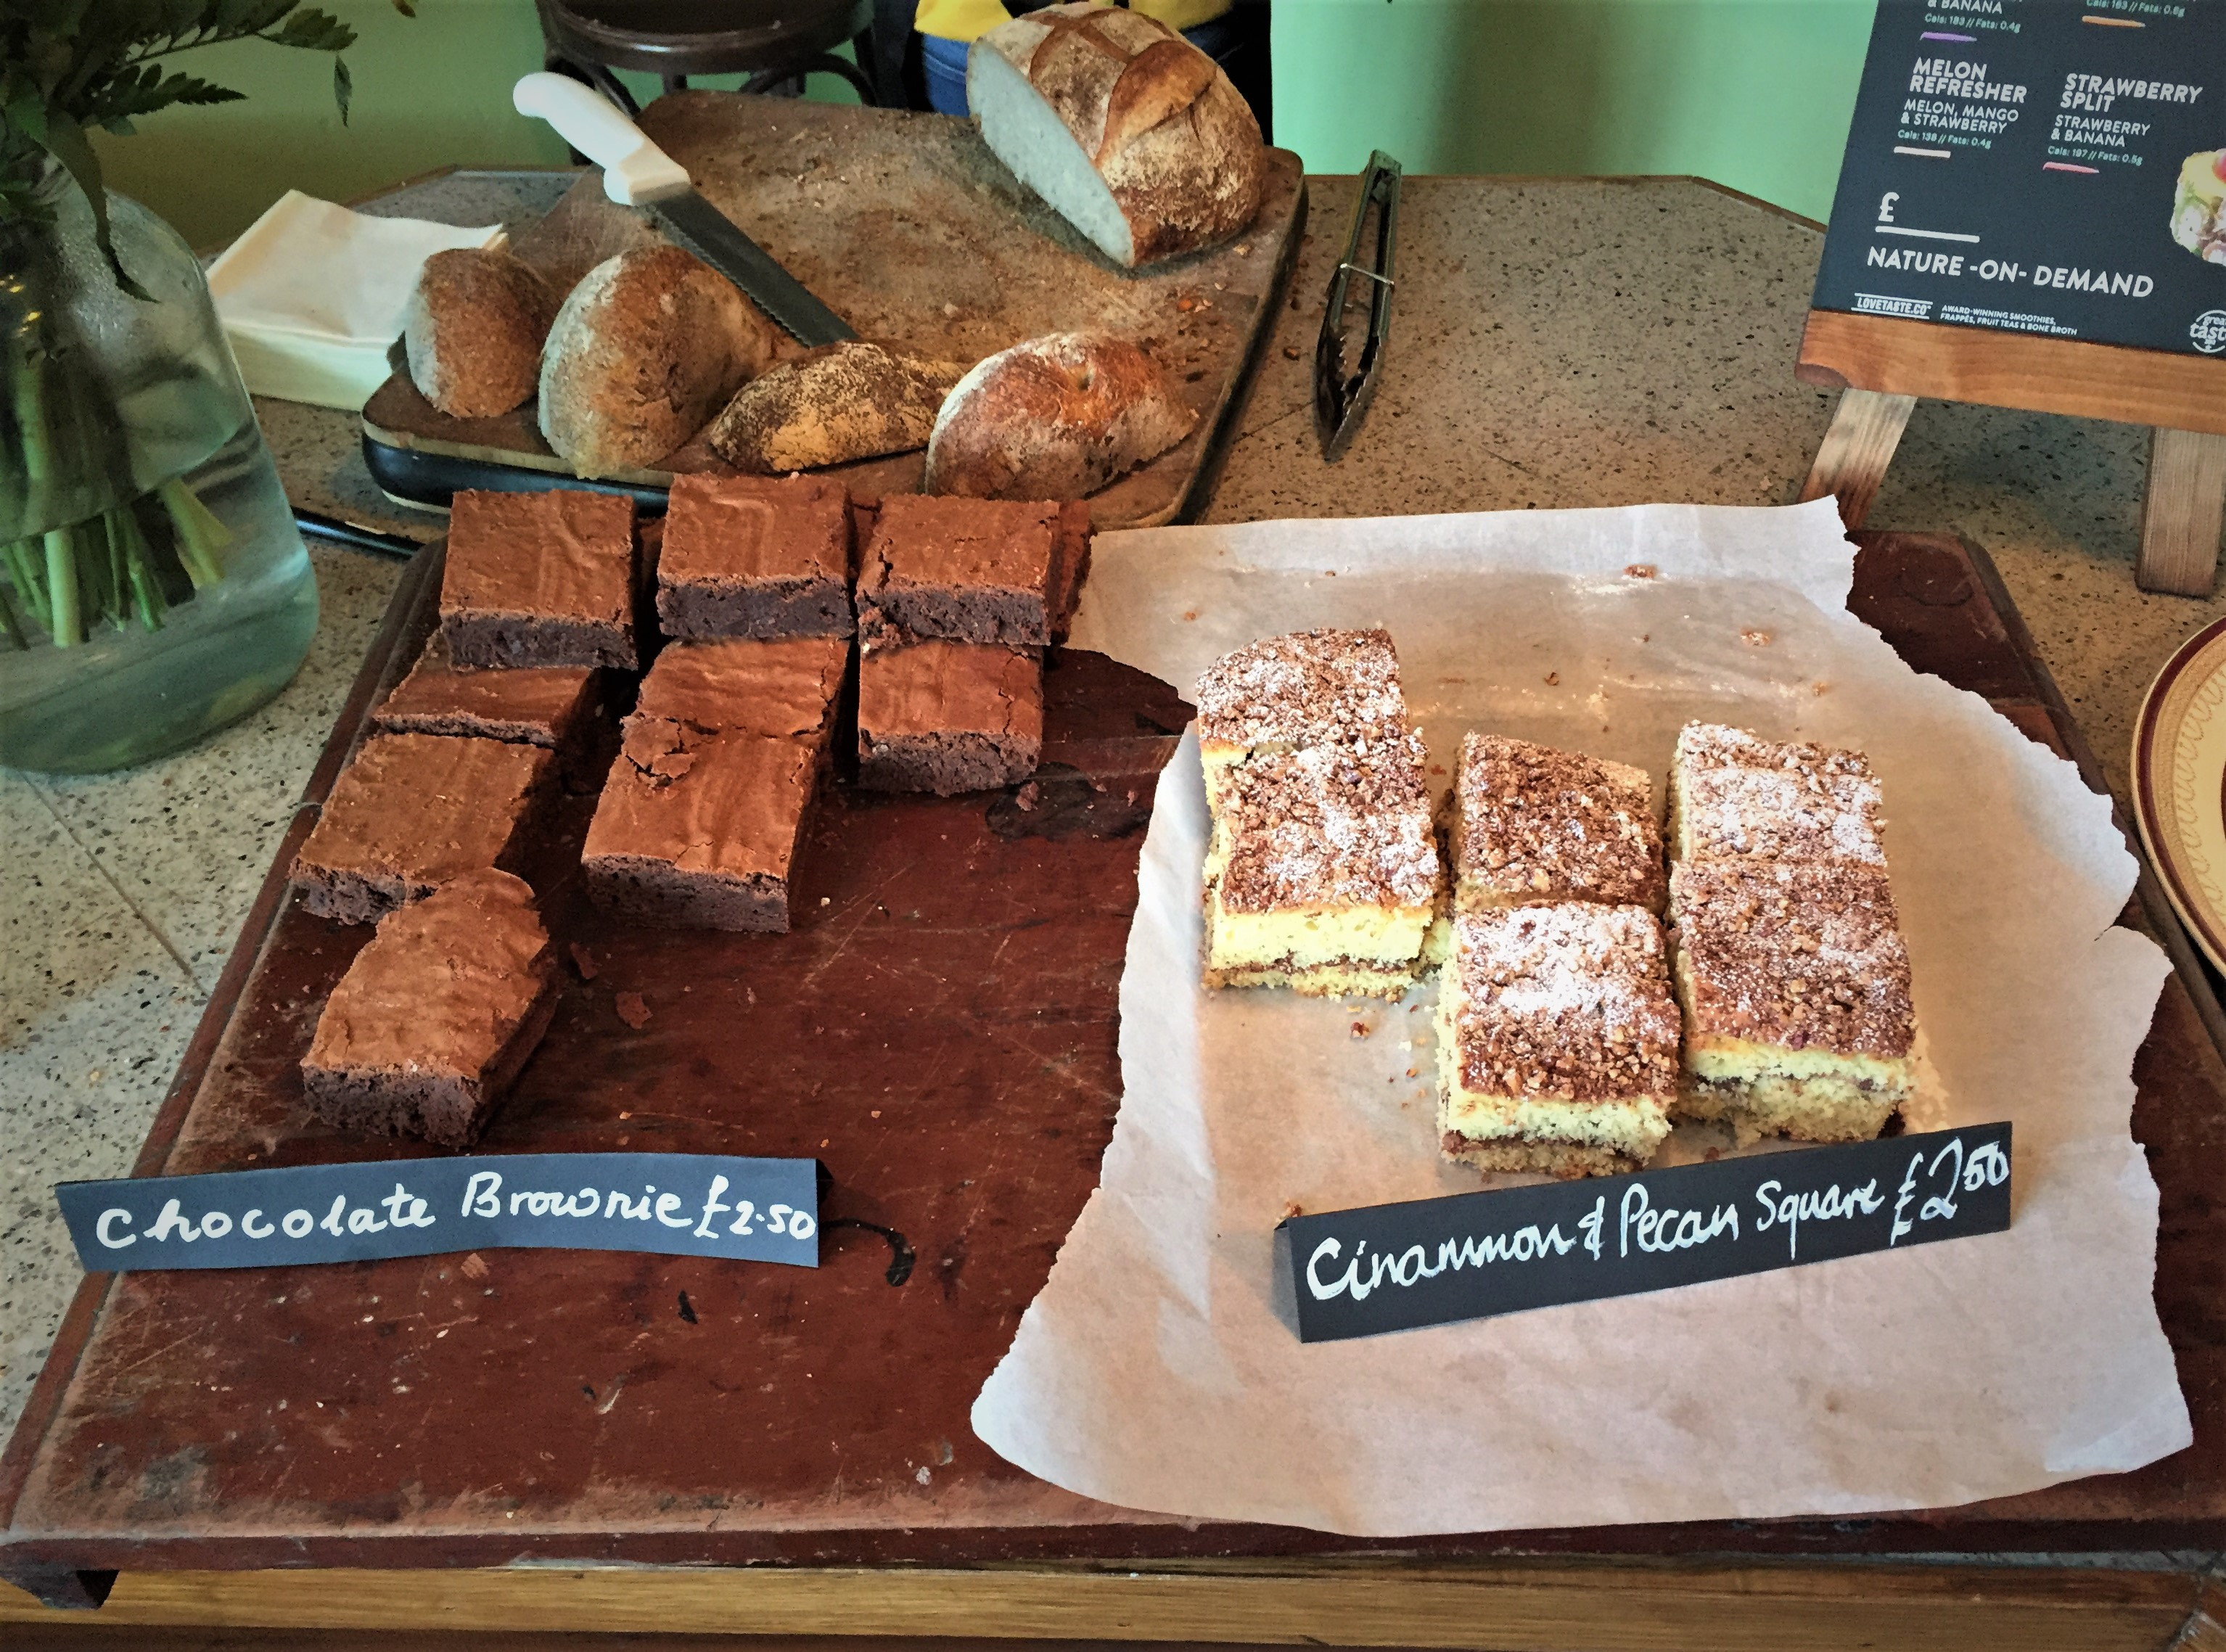 Cable Bakery & Roastery cakes - kenningtonrunoff.com